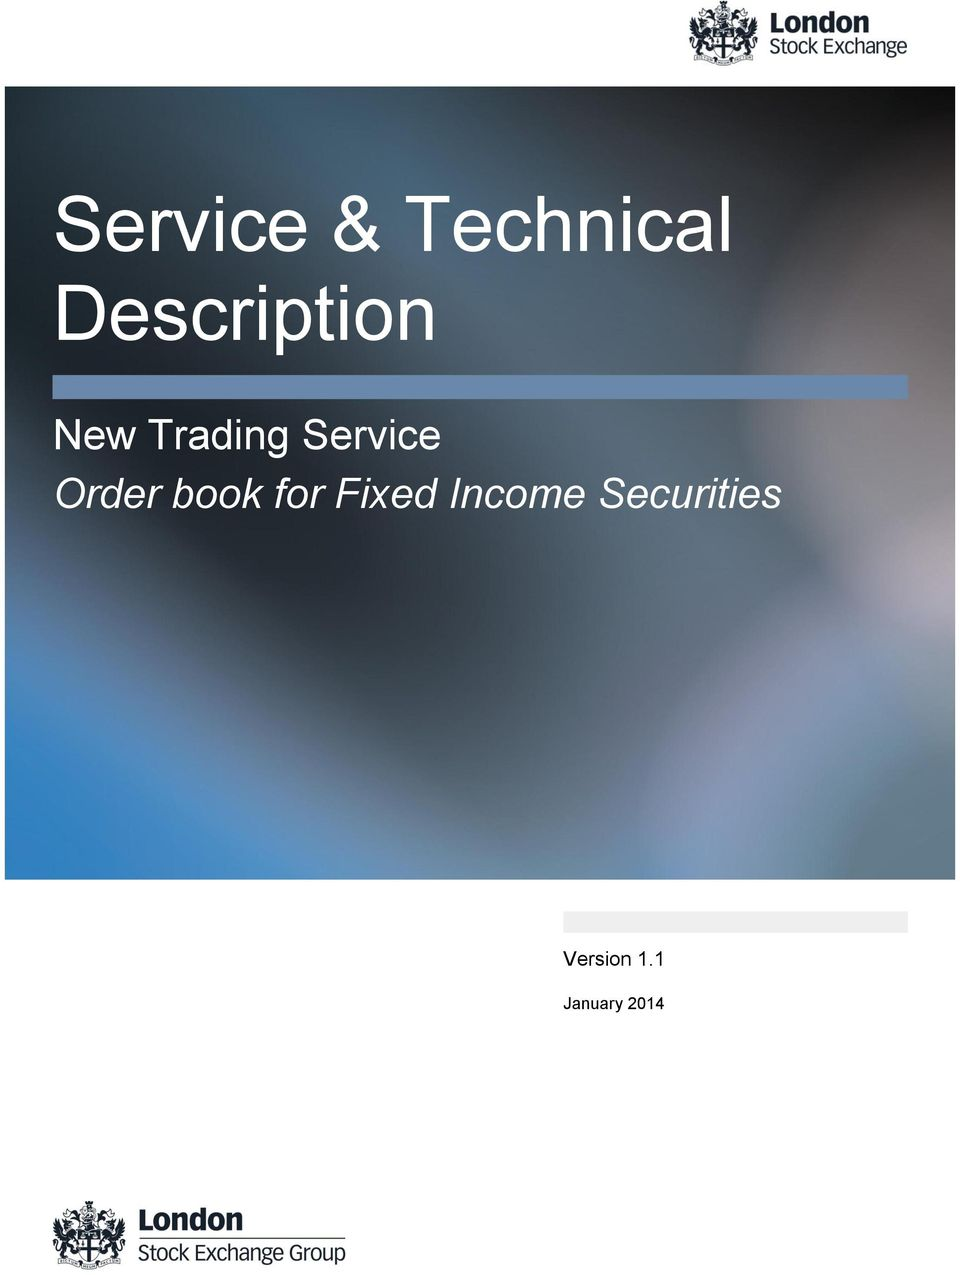 Service Order book for Fixed